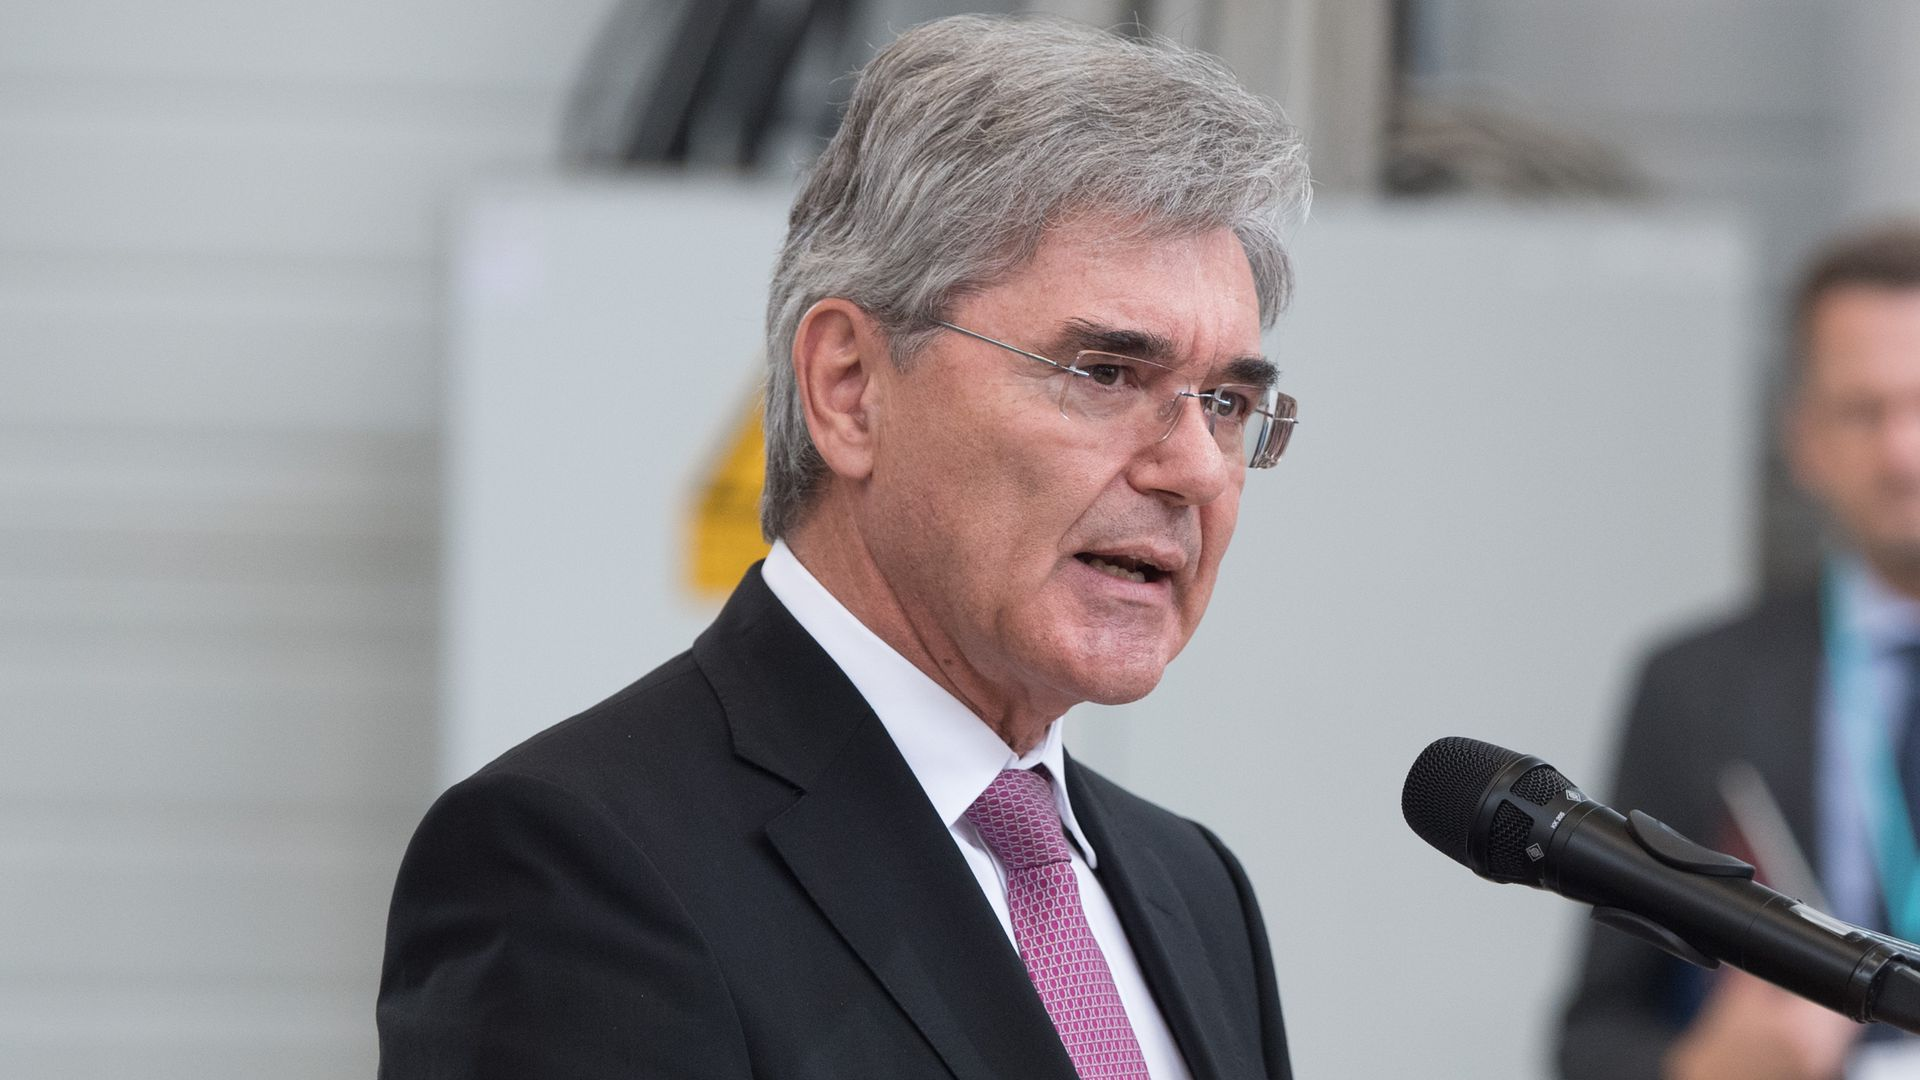 Siemens CEO: Trump is becoming 'face of racism and exclusion'